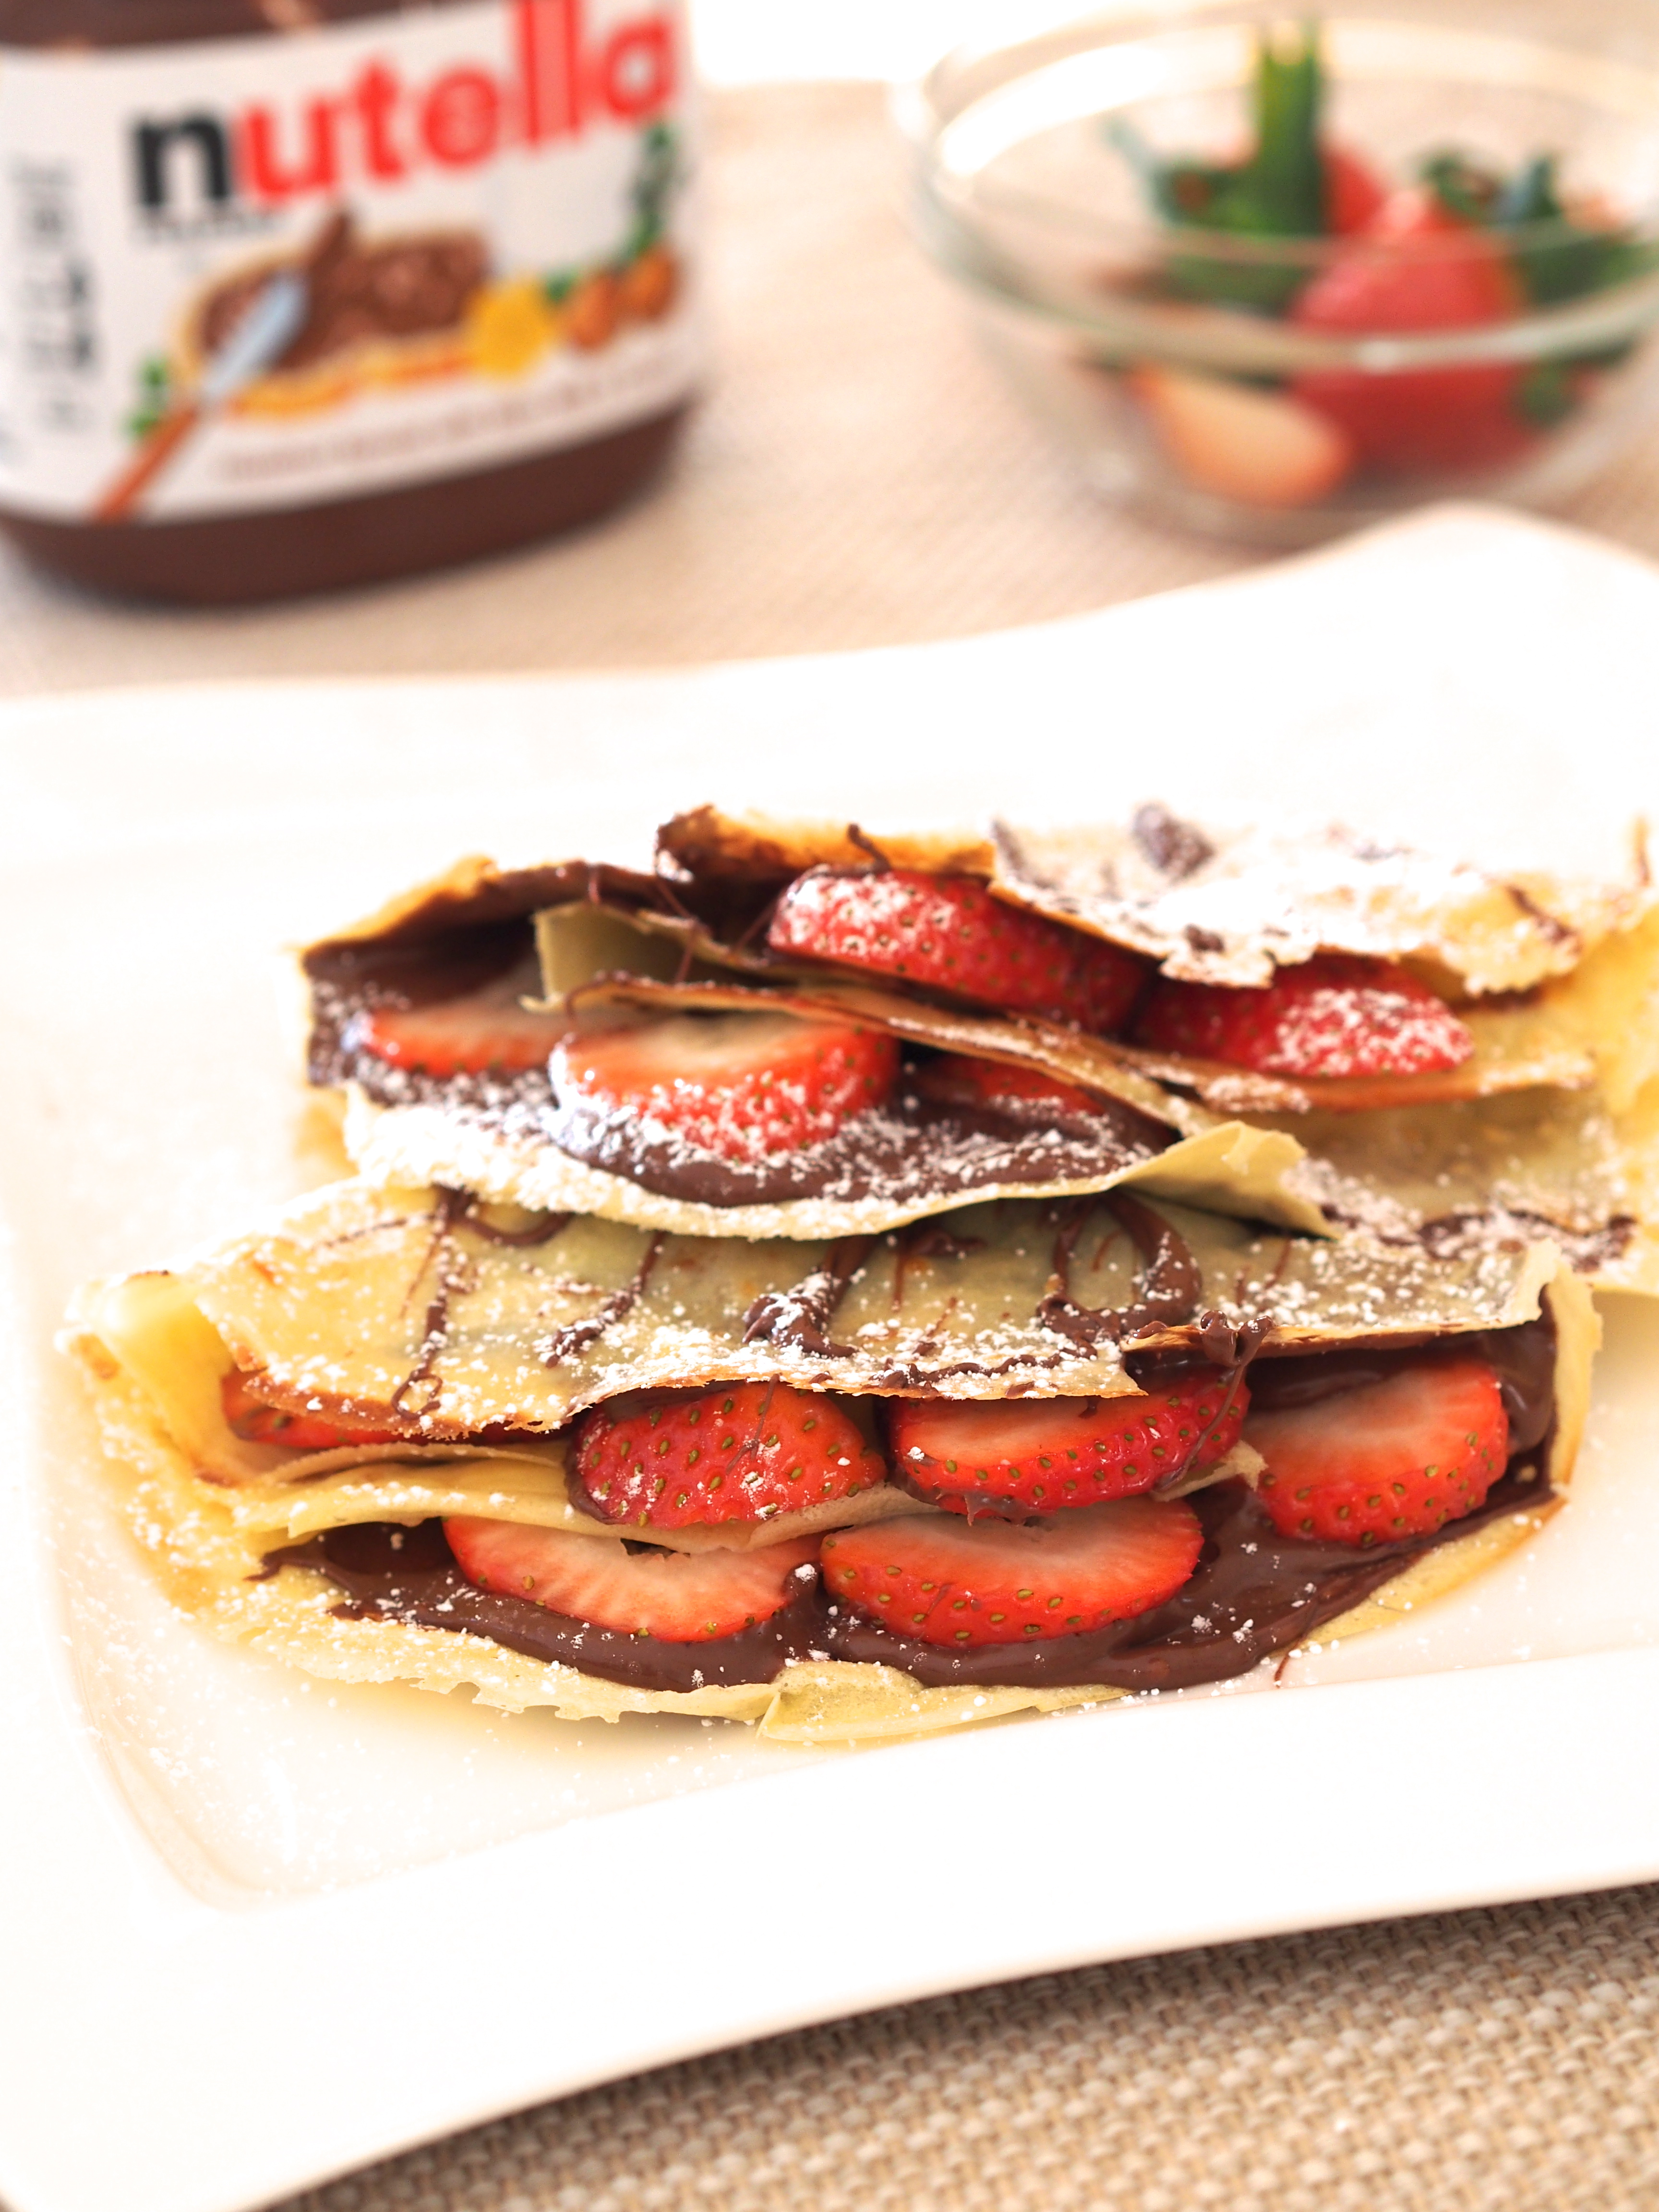 Nutella and Strawberry Crepes - Not Your Average College Food